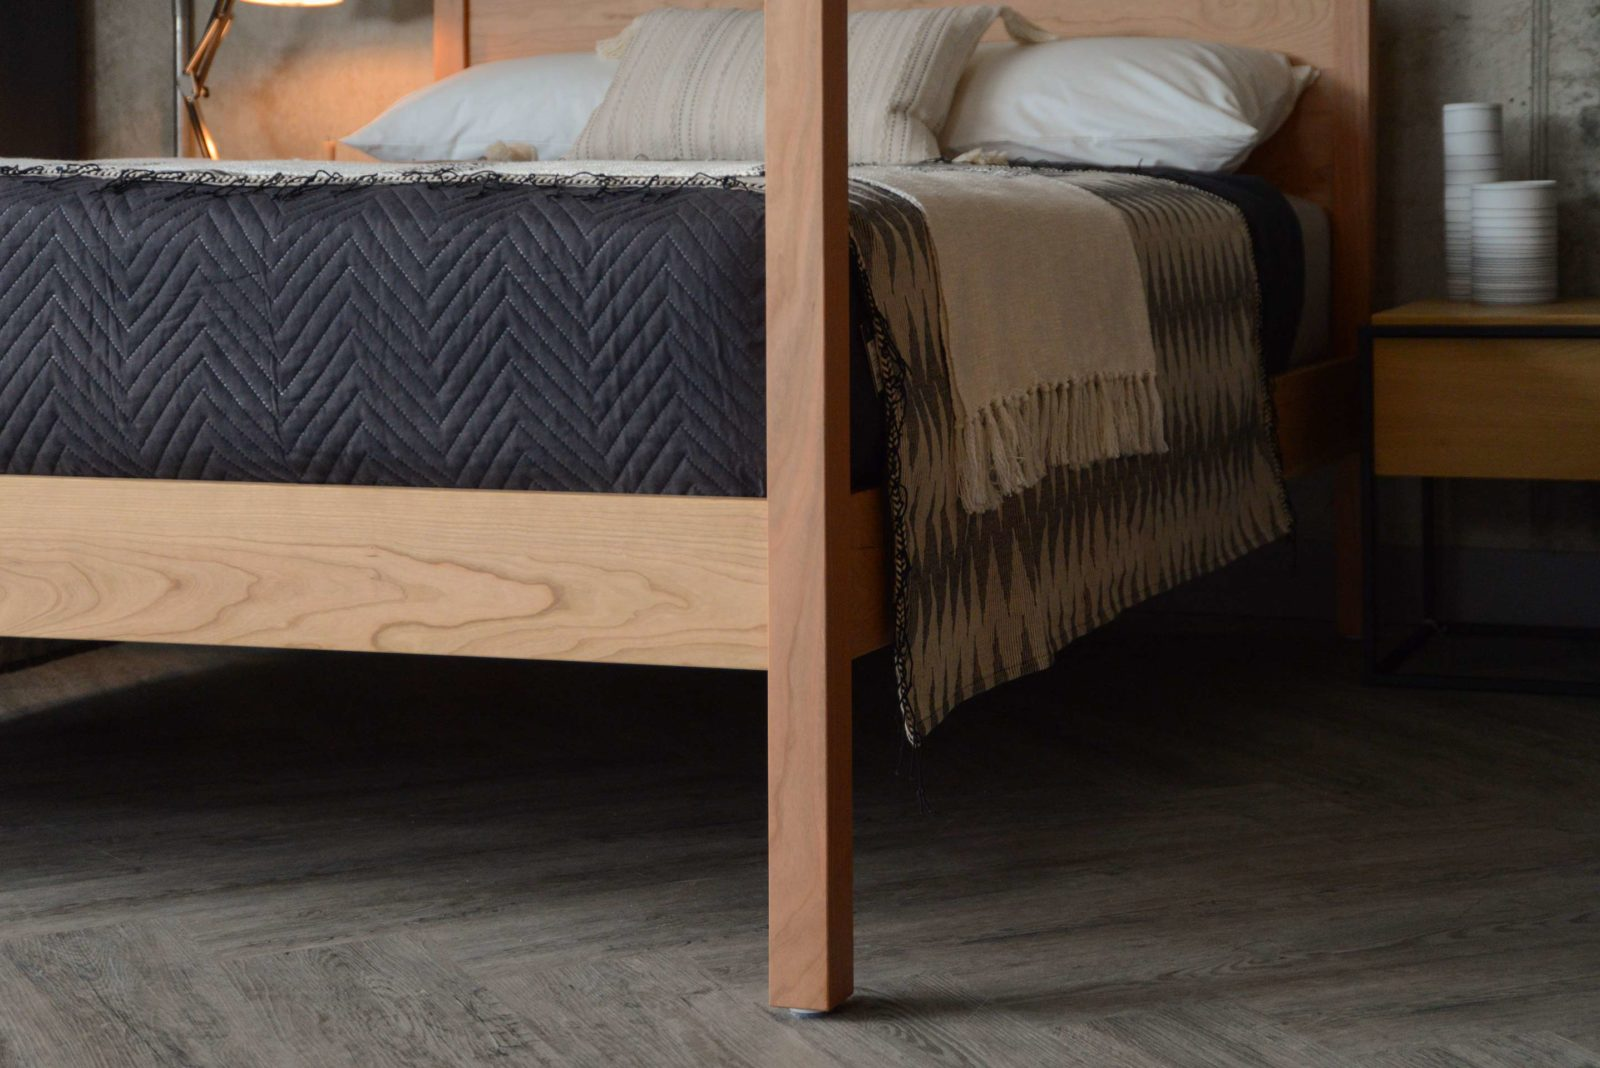 A closer view of the bedframe of our Hatfield 4 poster wooden bed